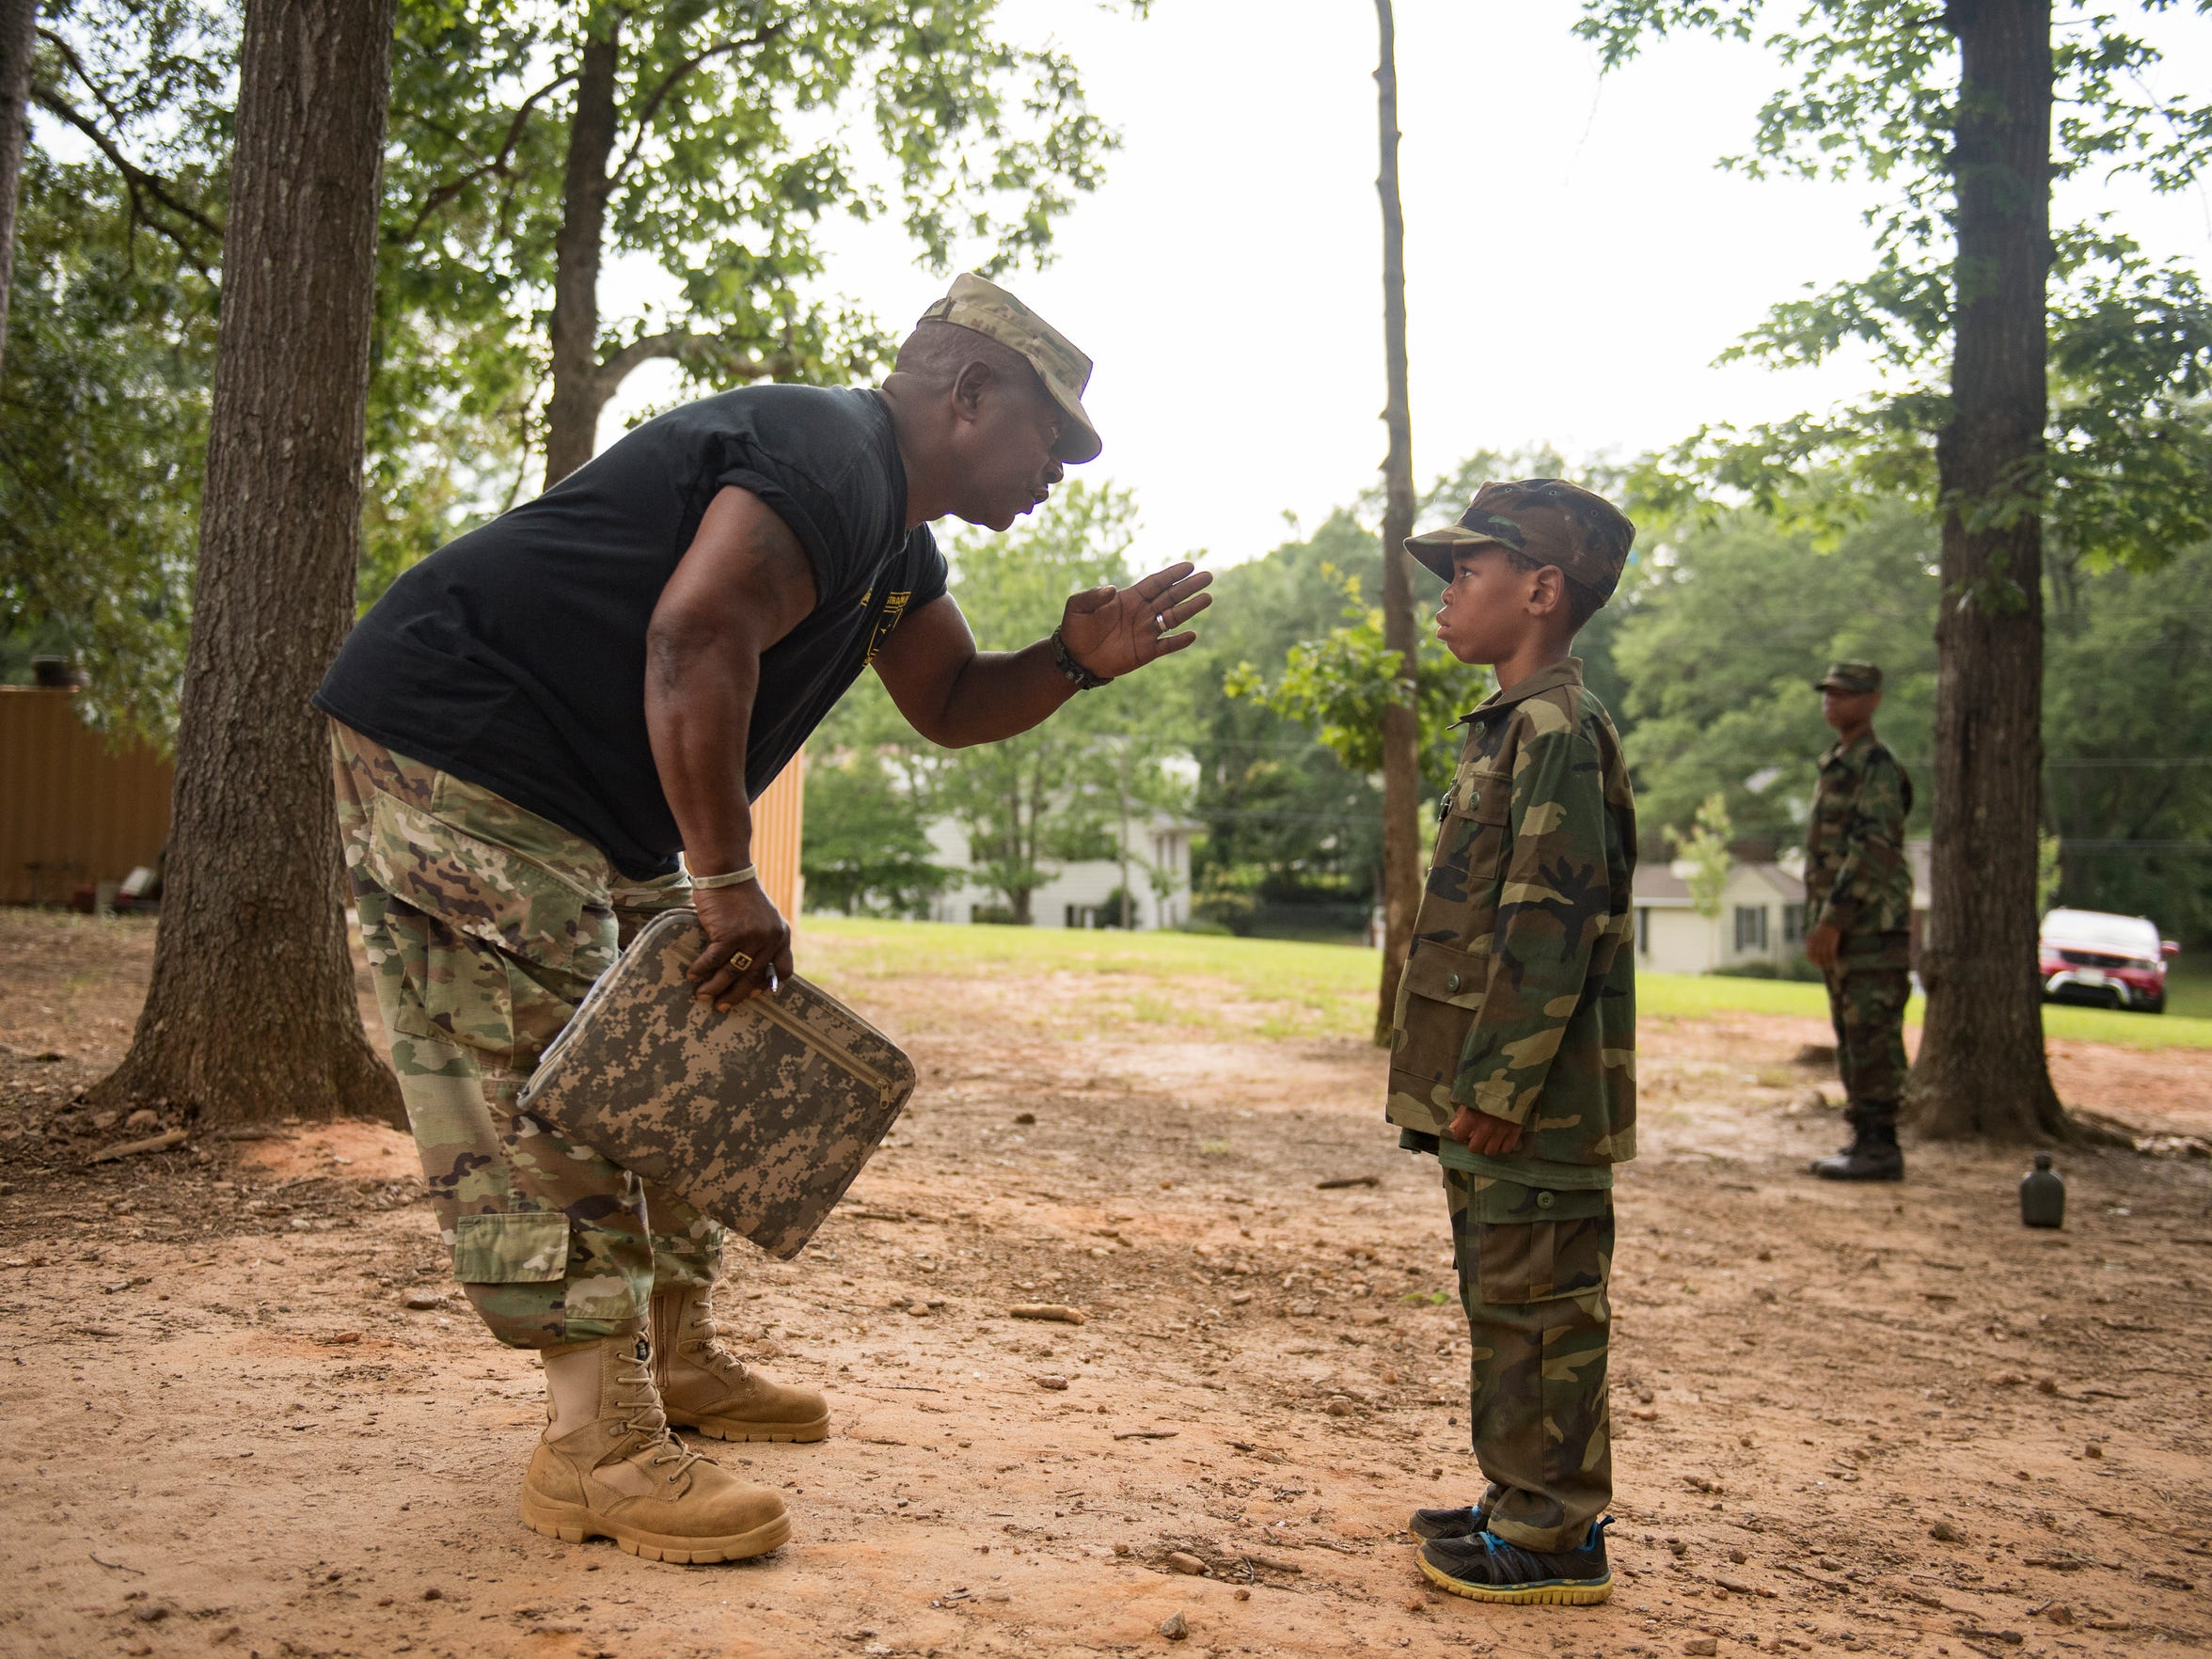 former army drill sergeant uses his past to mentor